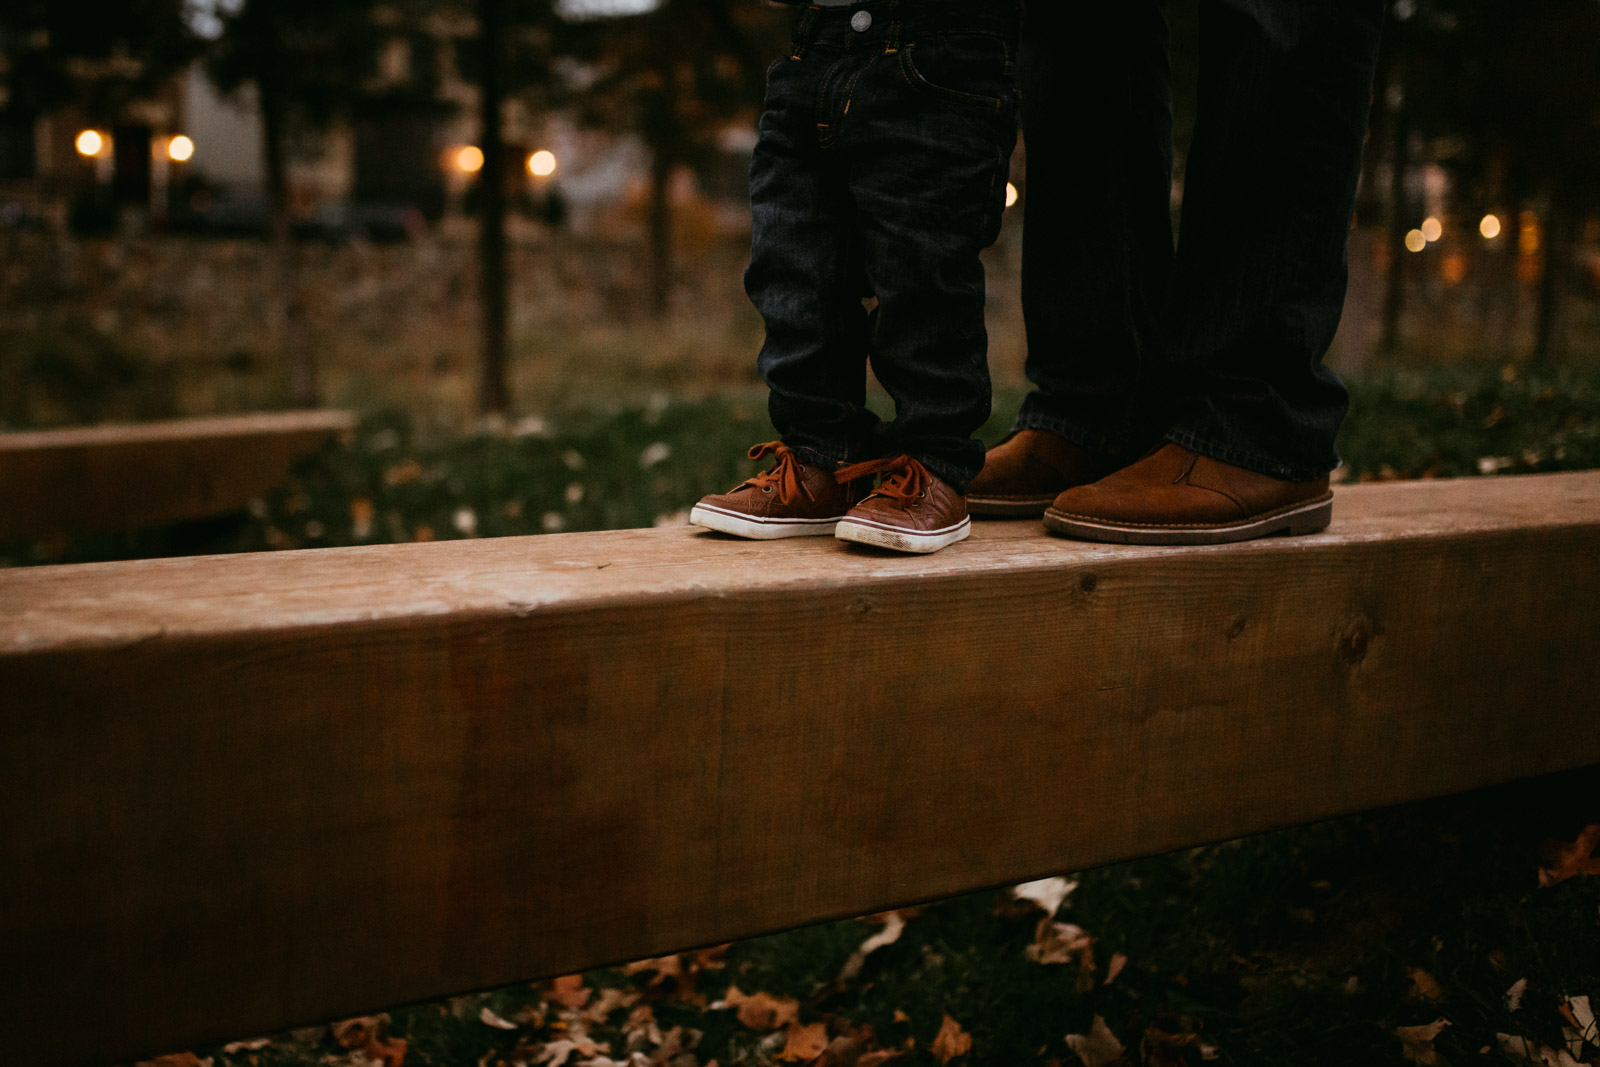 Close up of brown shoes as dad helps son across a wooden beam at The Barn at One Loudoun, Ashburn, Virginia